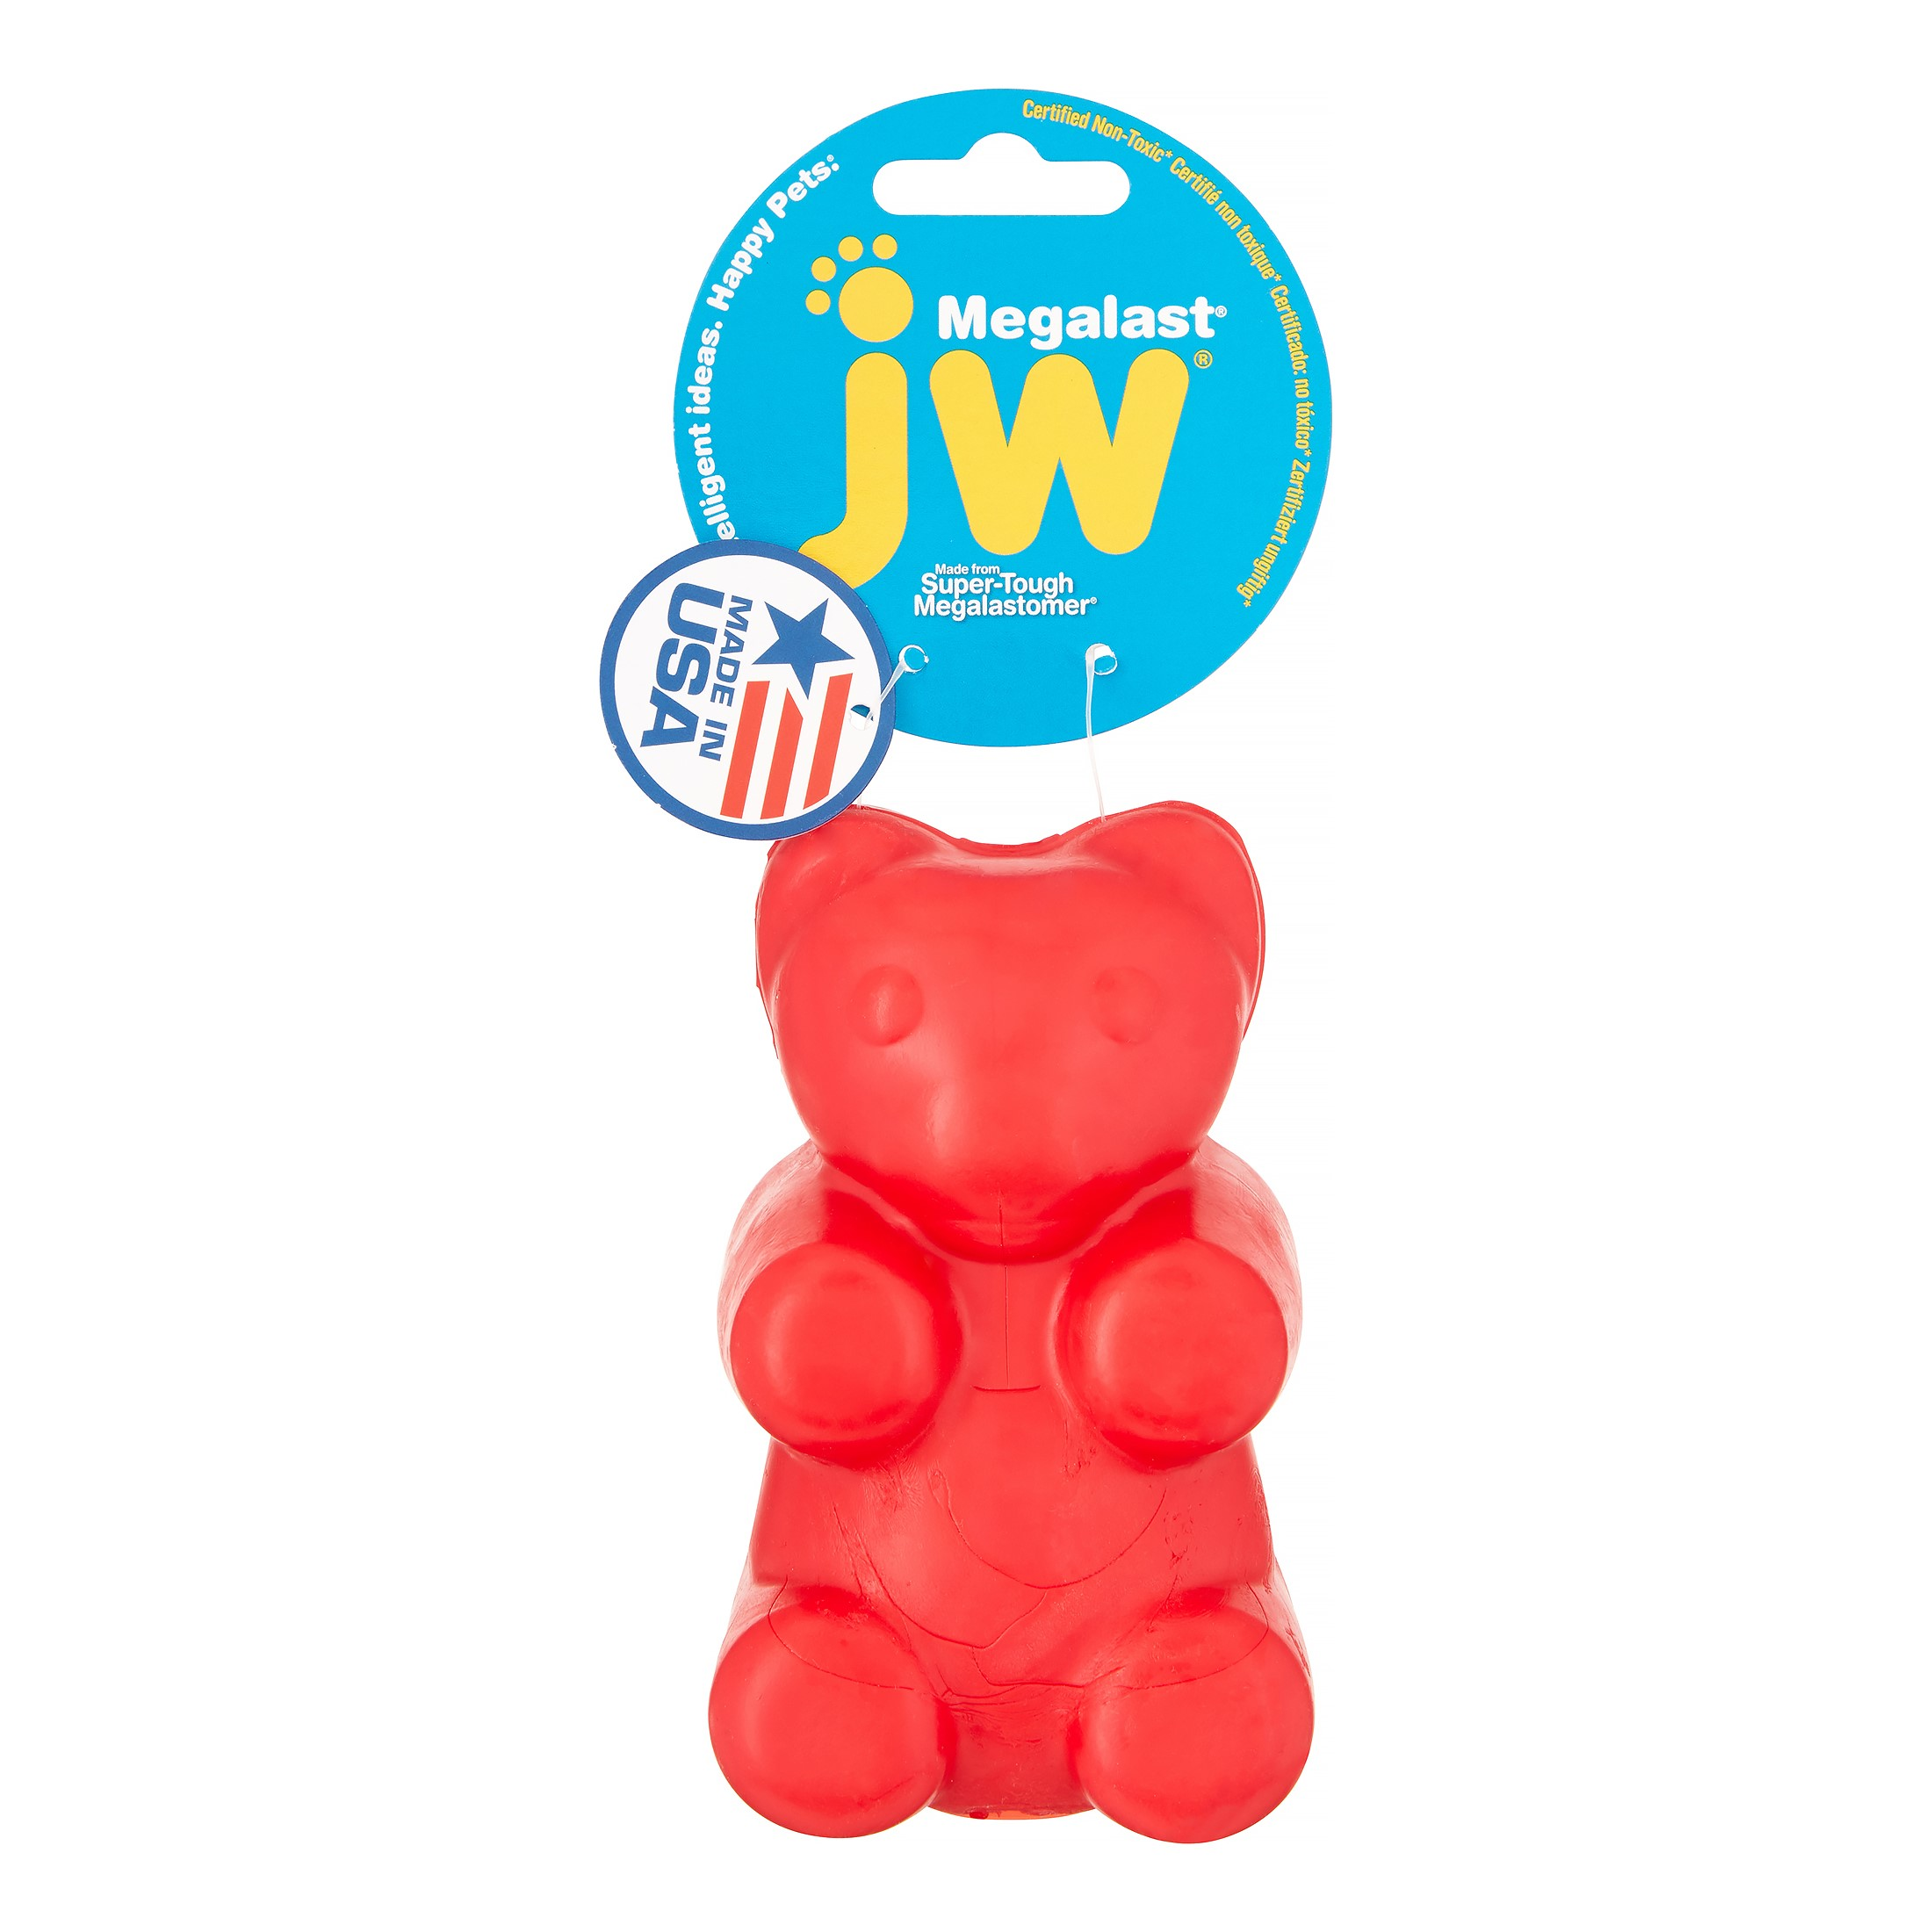 Petmate JW Megalast Bear Dog Toy, Large